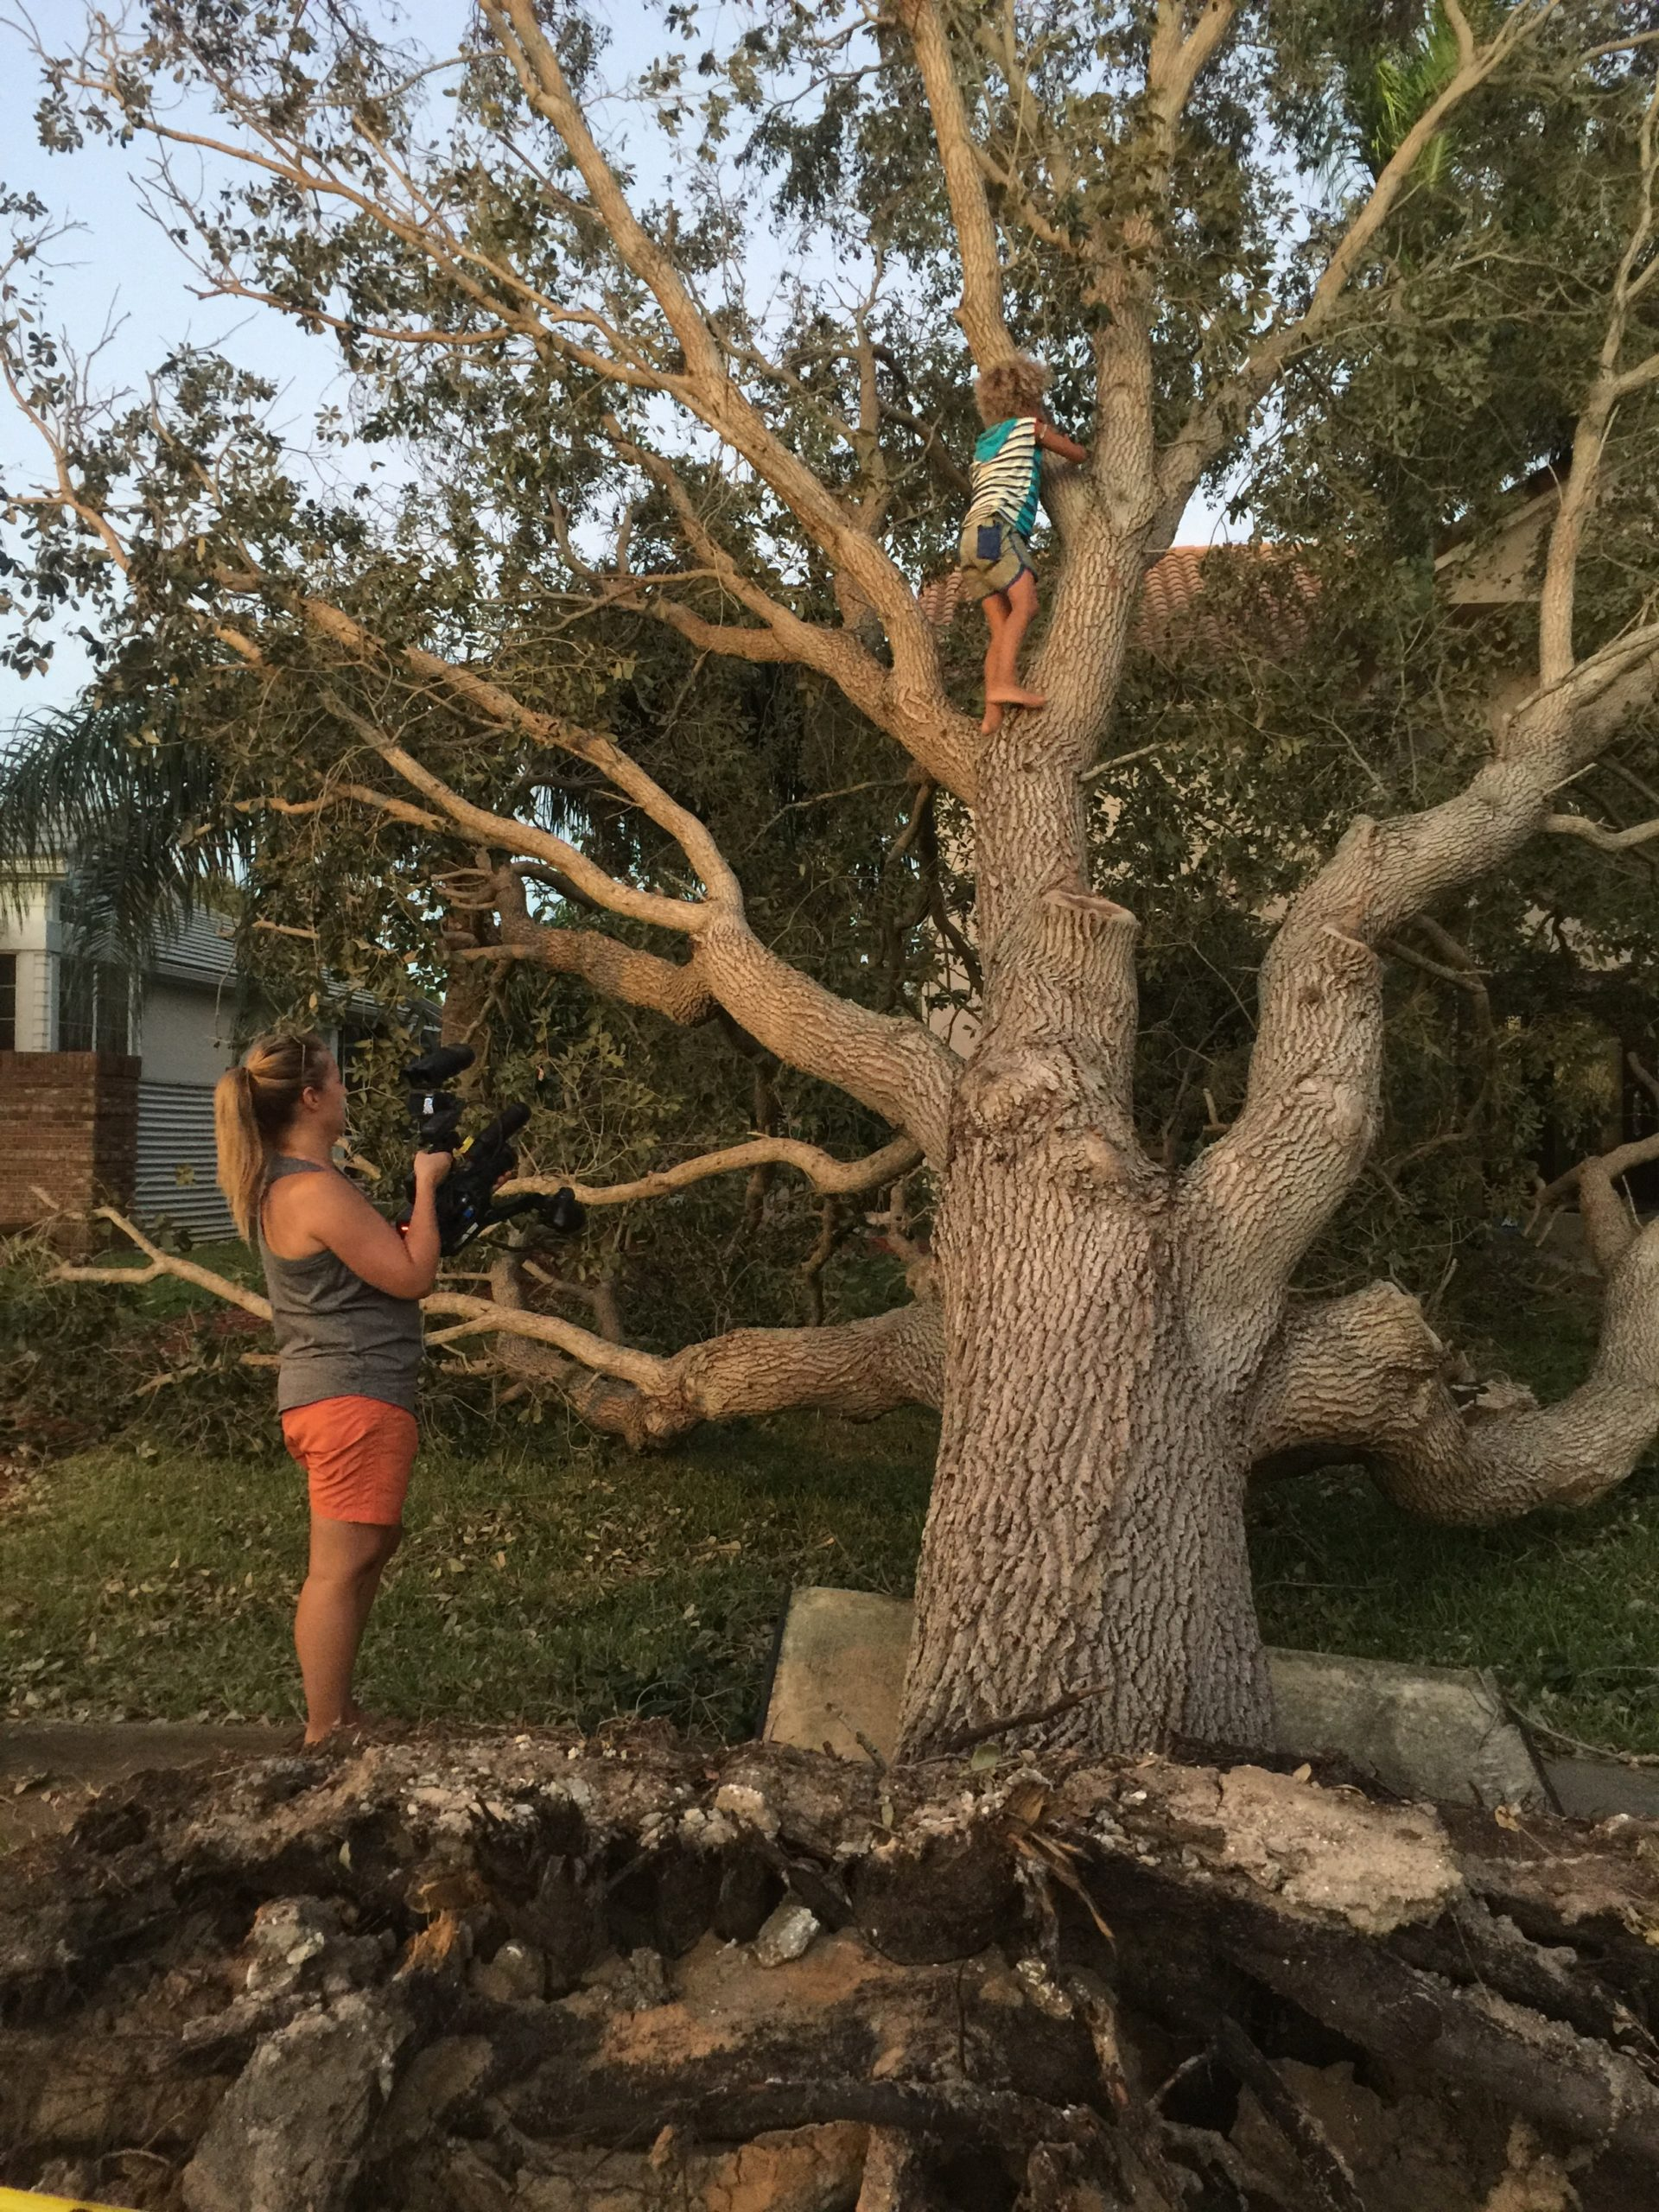 Christi Cooper filming Levi D., a plaintiff in the youth climate change case, in a tree near his Florida home after a storm.